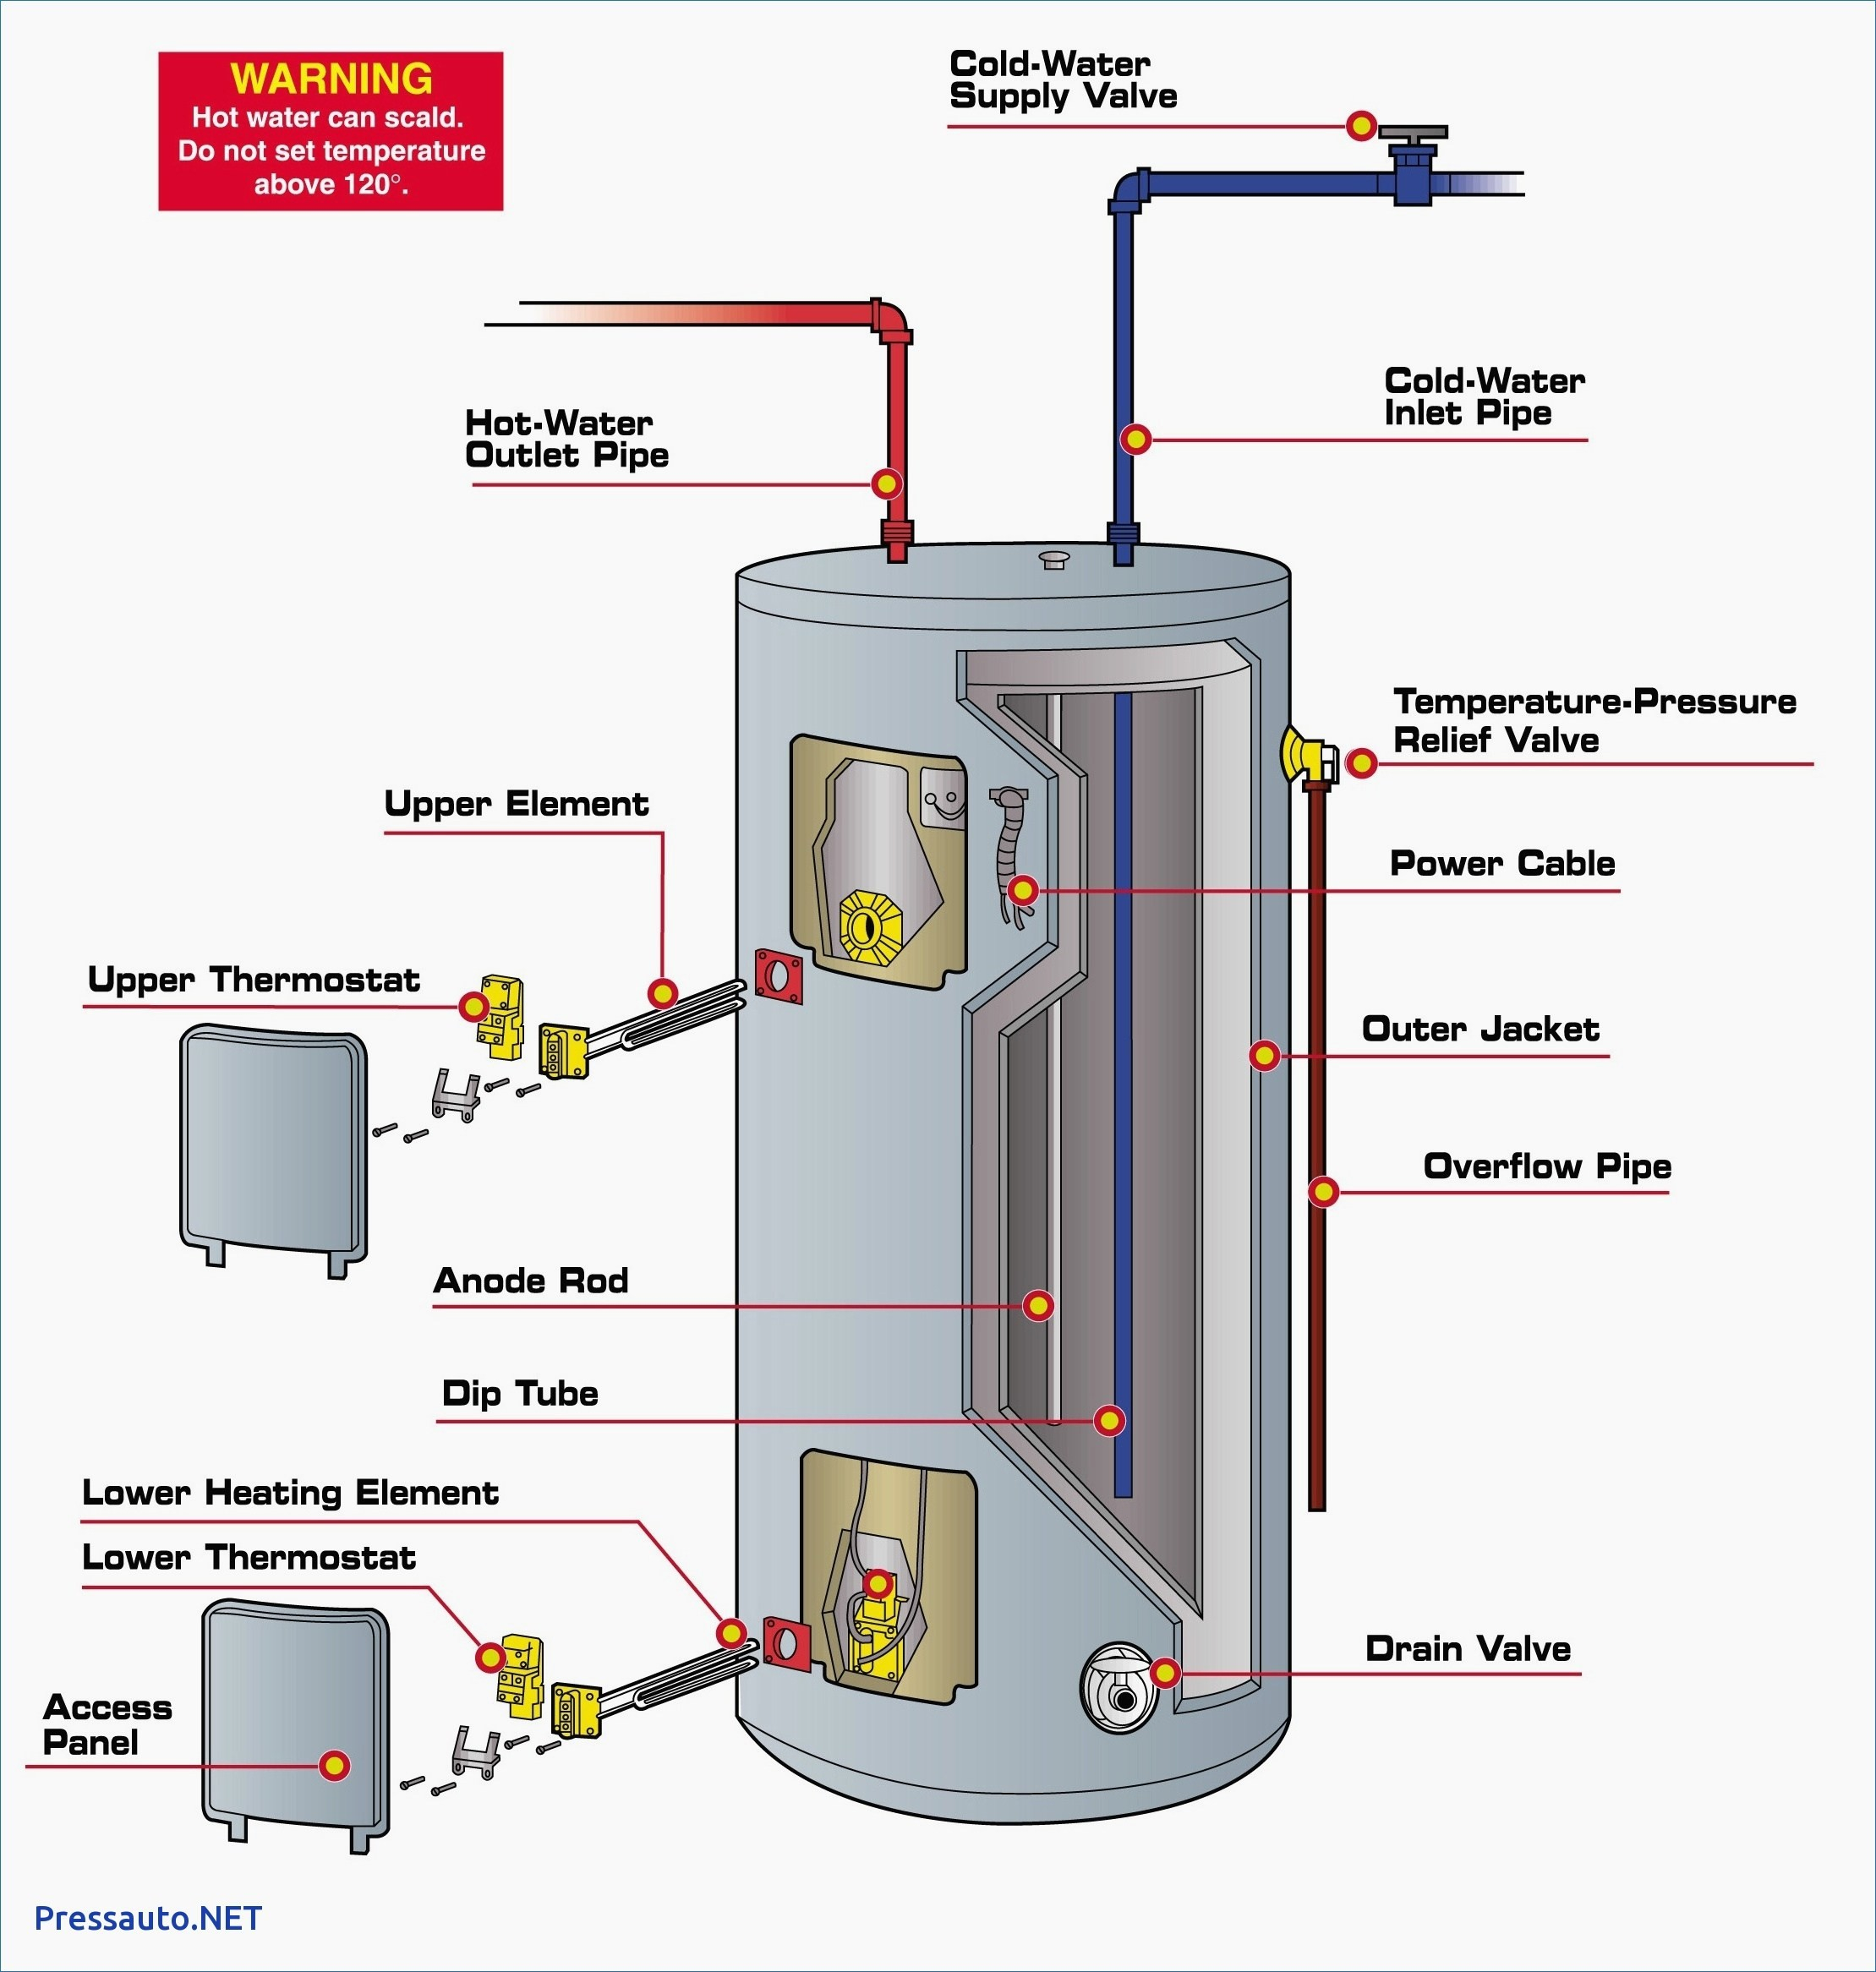 get tankless water heater wiring diagram downloadtankless water heater wiring diagram wiring diagram electric water heater fresh new hot water heater